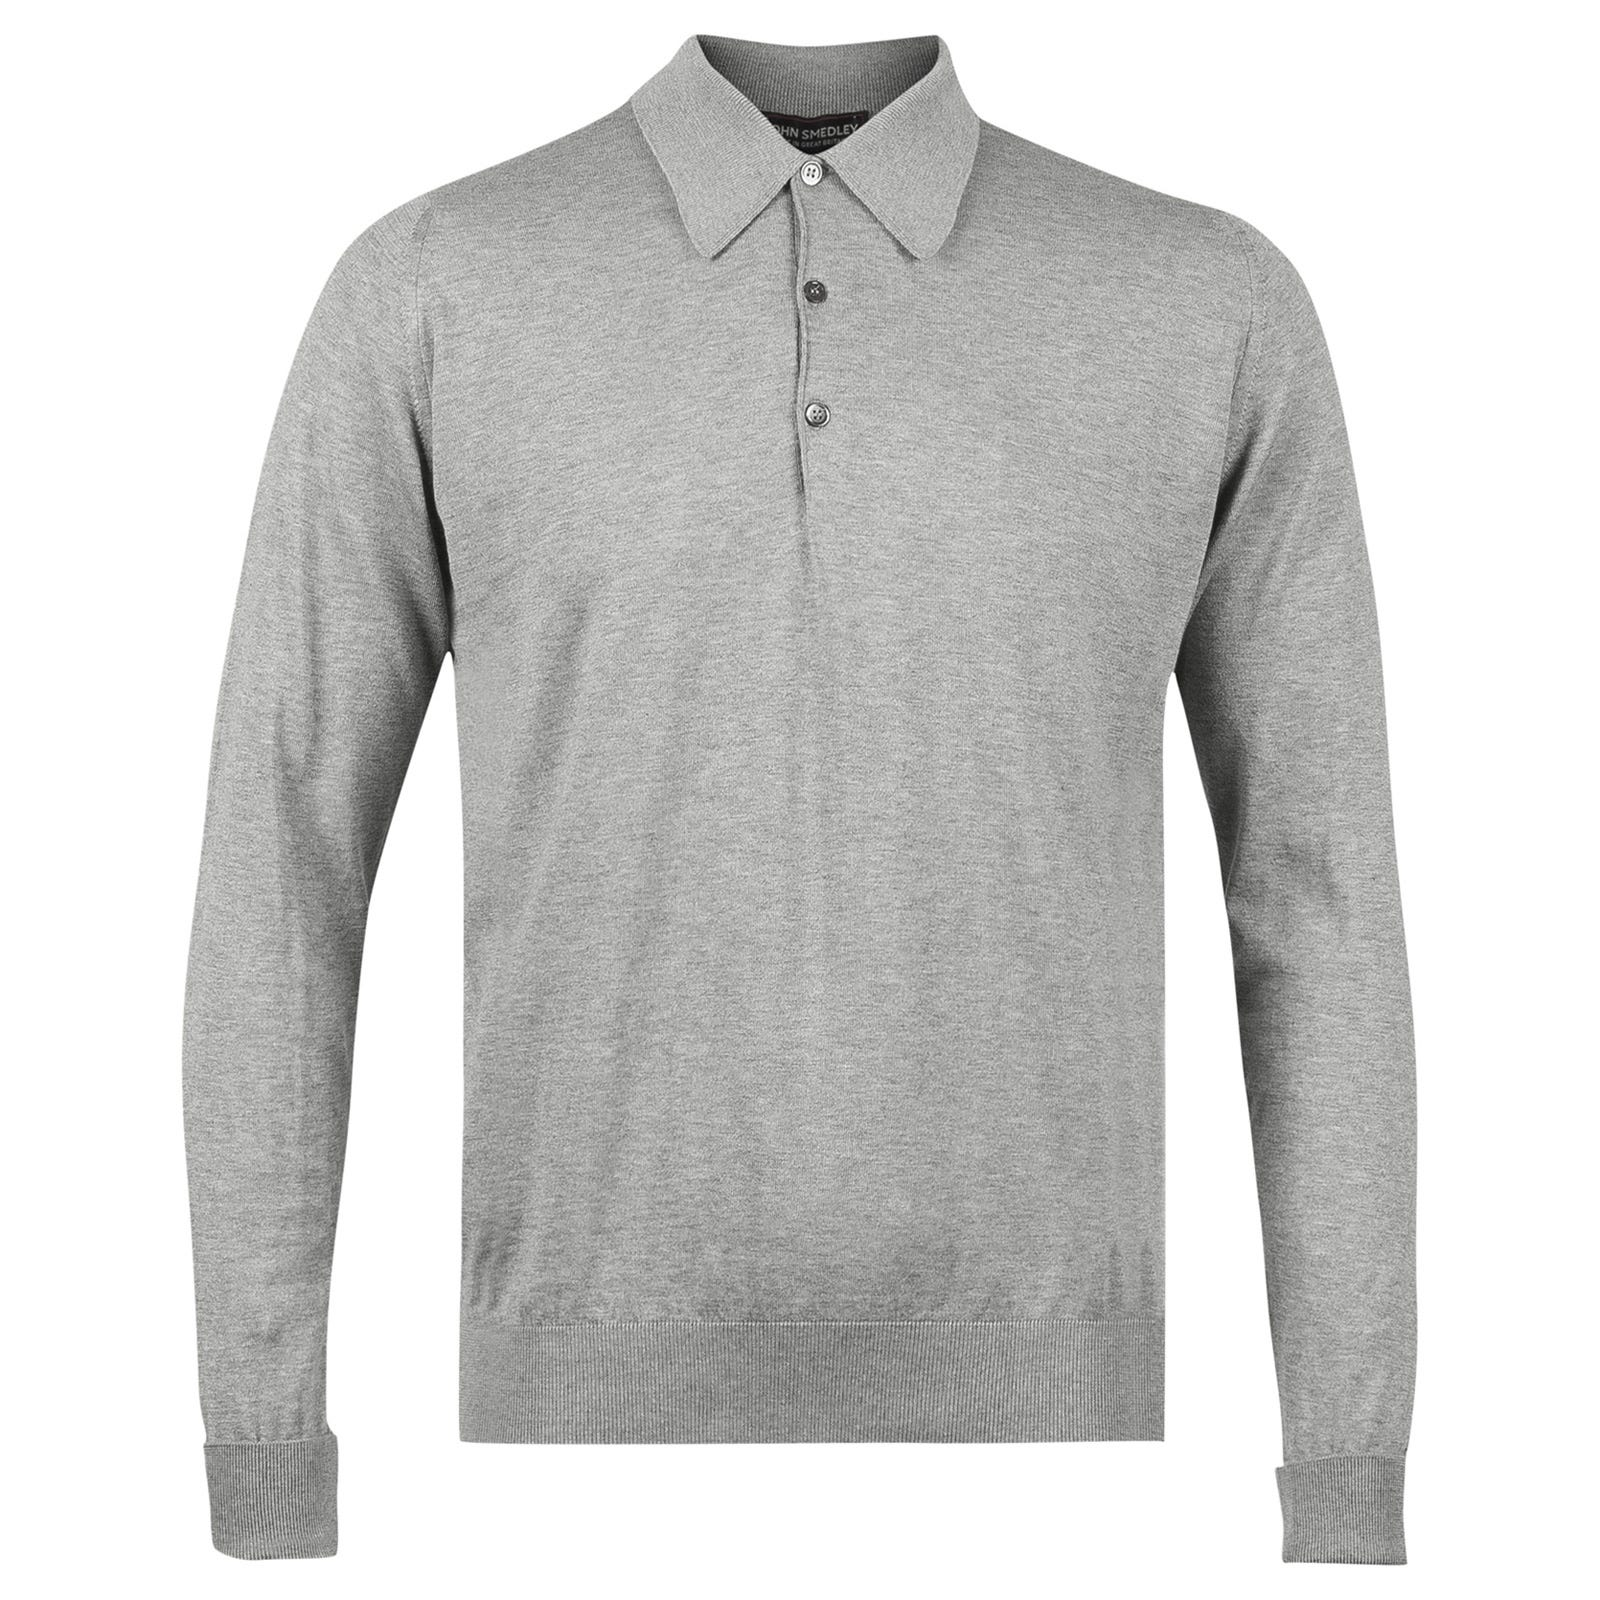 John Smedley finchley Sea Island Cotton Shirt in Silver-L